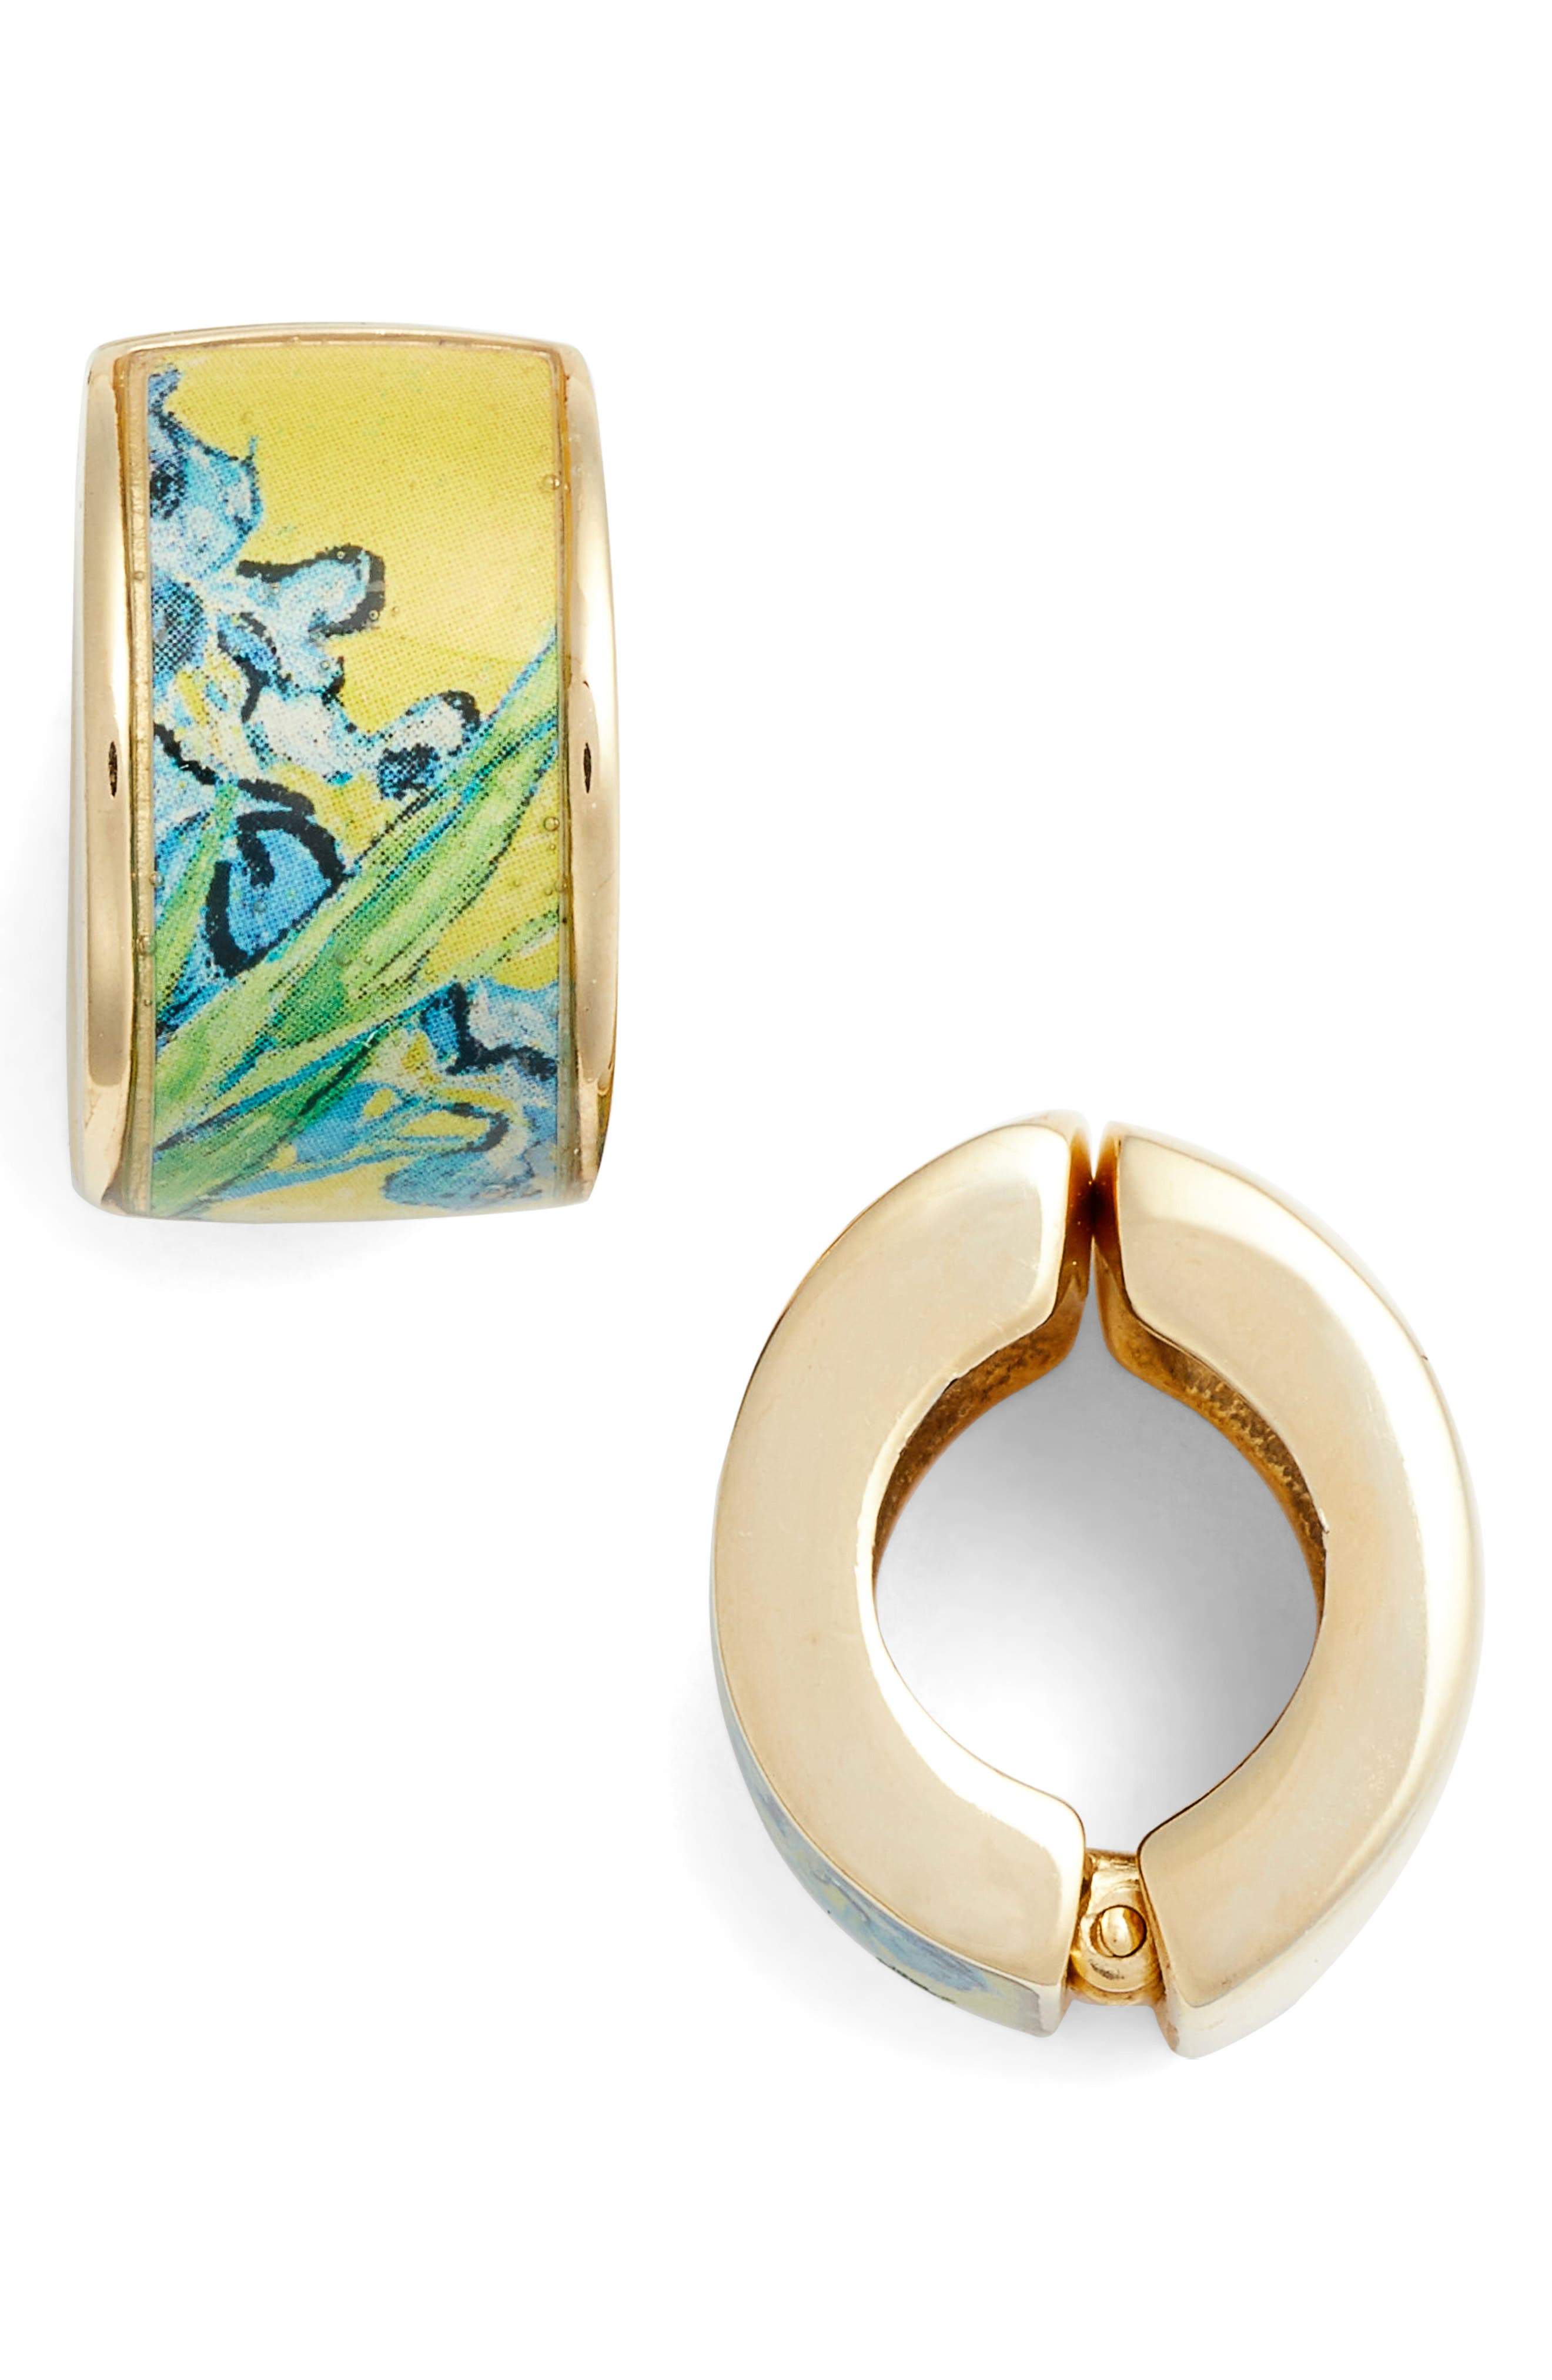 Goldtone Irises Clip-on Earrings,                         Main,                         color, Yellow/ Gold